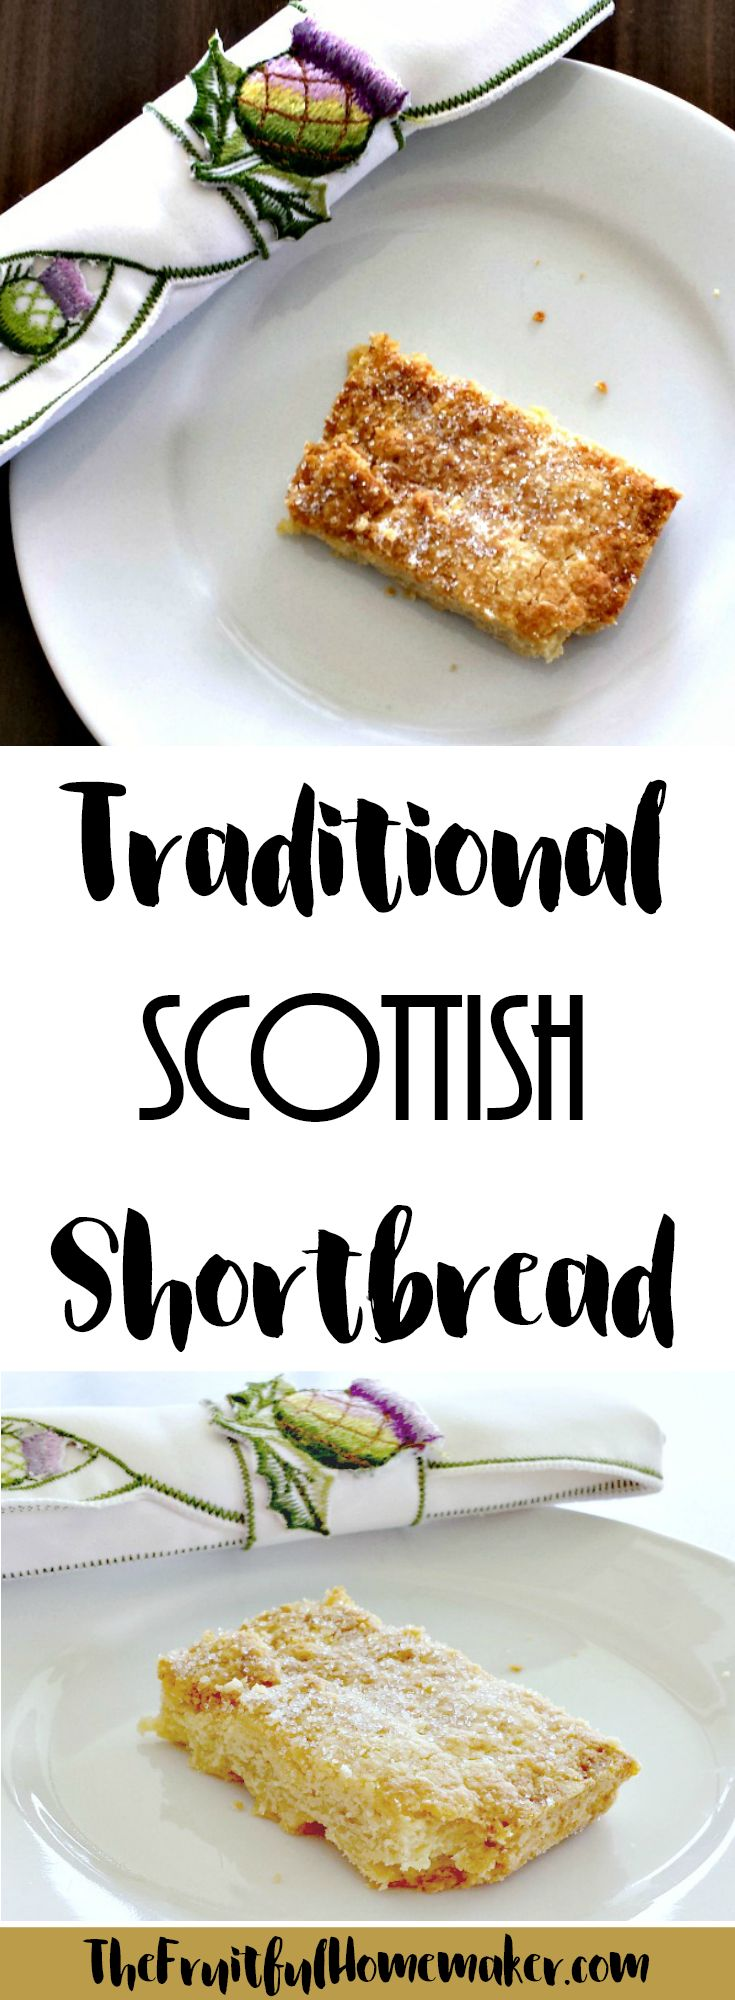 This traditional Scottish shortbread recipe is so easy to make and delicious to eat! Make into fingers or cookies. While the recipe may be simple the taste is authentic. Great for Christmas, New Year or any other celebration, or just for a snack!